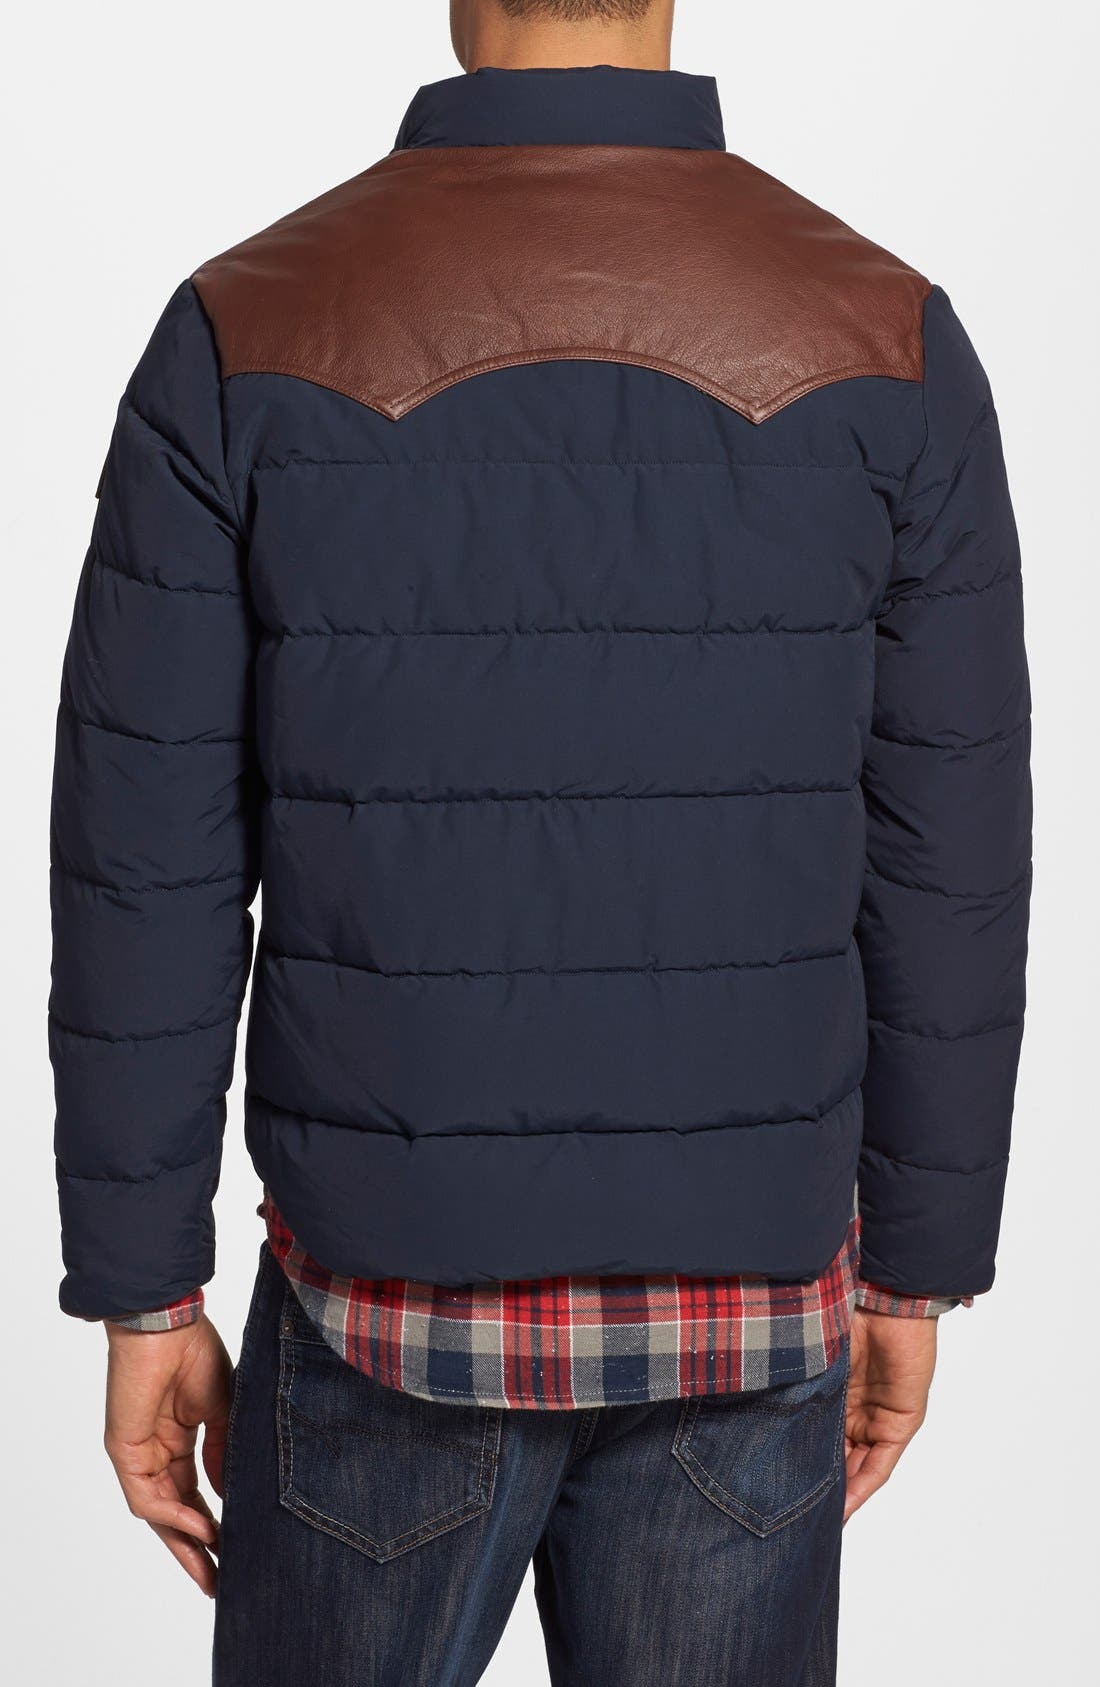 'Stapleton' Down Jacket,                             Alternate thumbnail 3, color,                             410